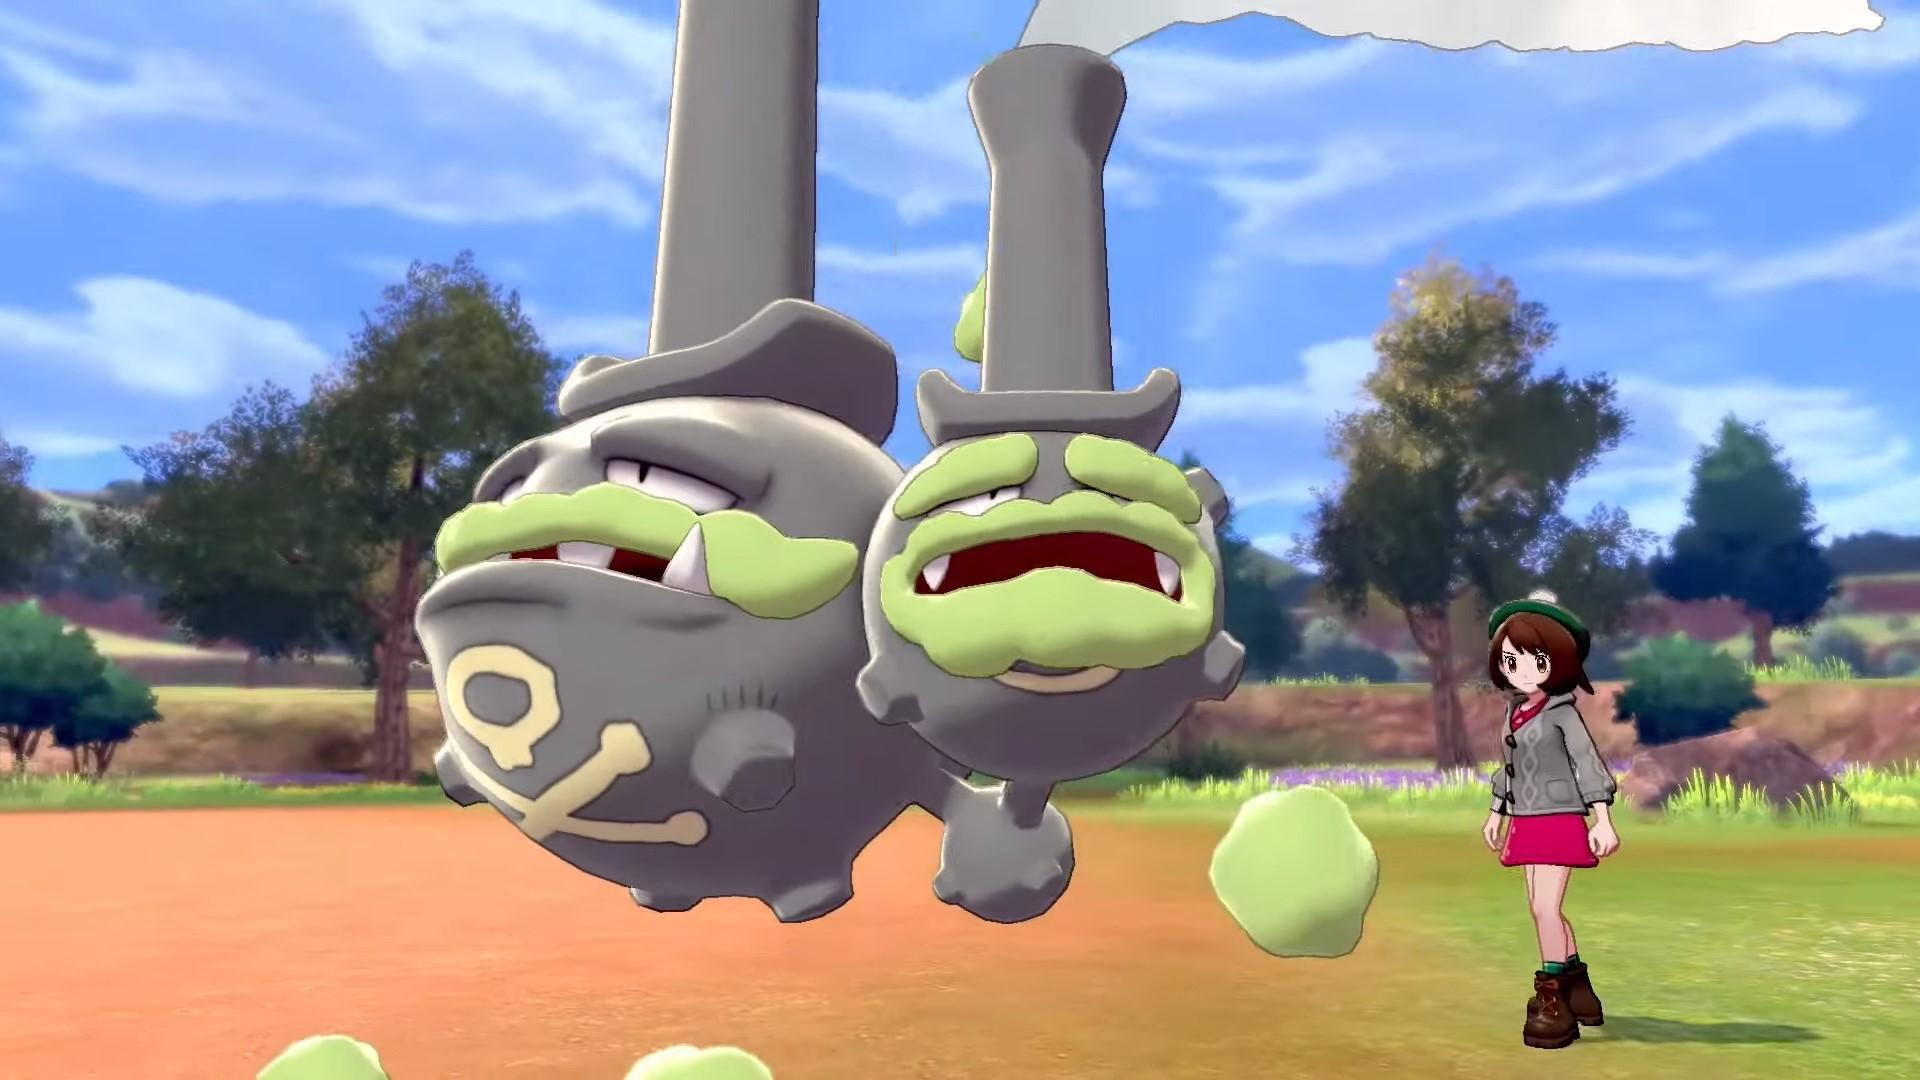 'Pokémon Sword' and 'Shield' show the ways of Galar in his new trailer 1